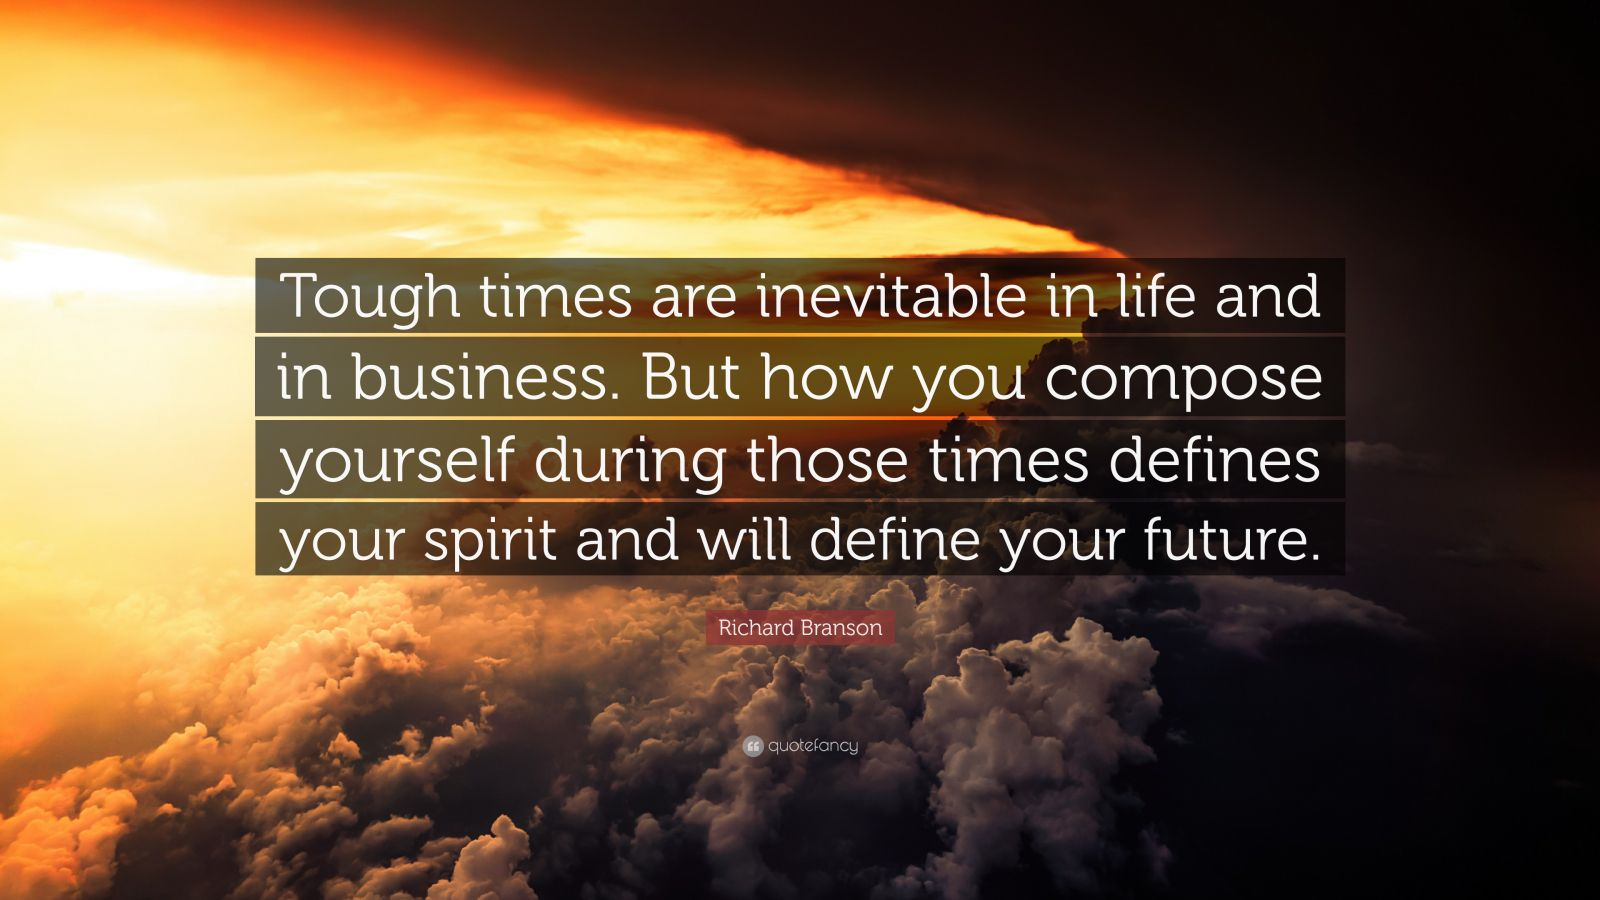 """Richard Branson Quote: """"Tough times are inevitable in life and in business. But how you compose yourself during those times defines your spirit and will define your future."""""""